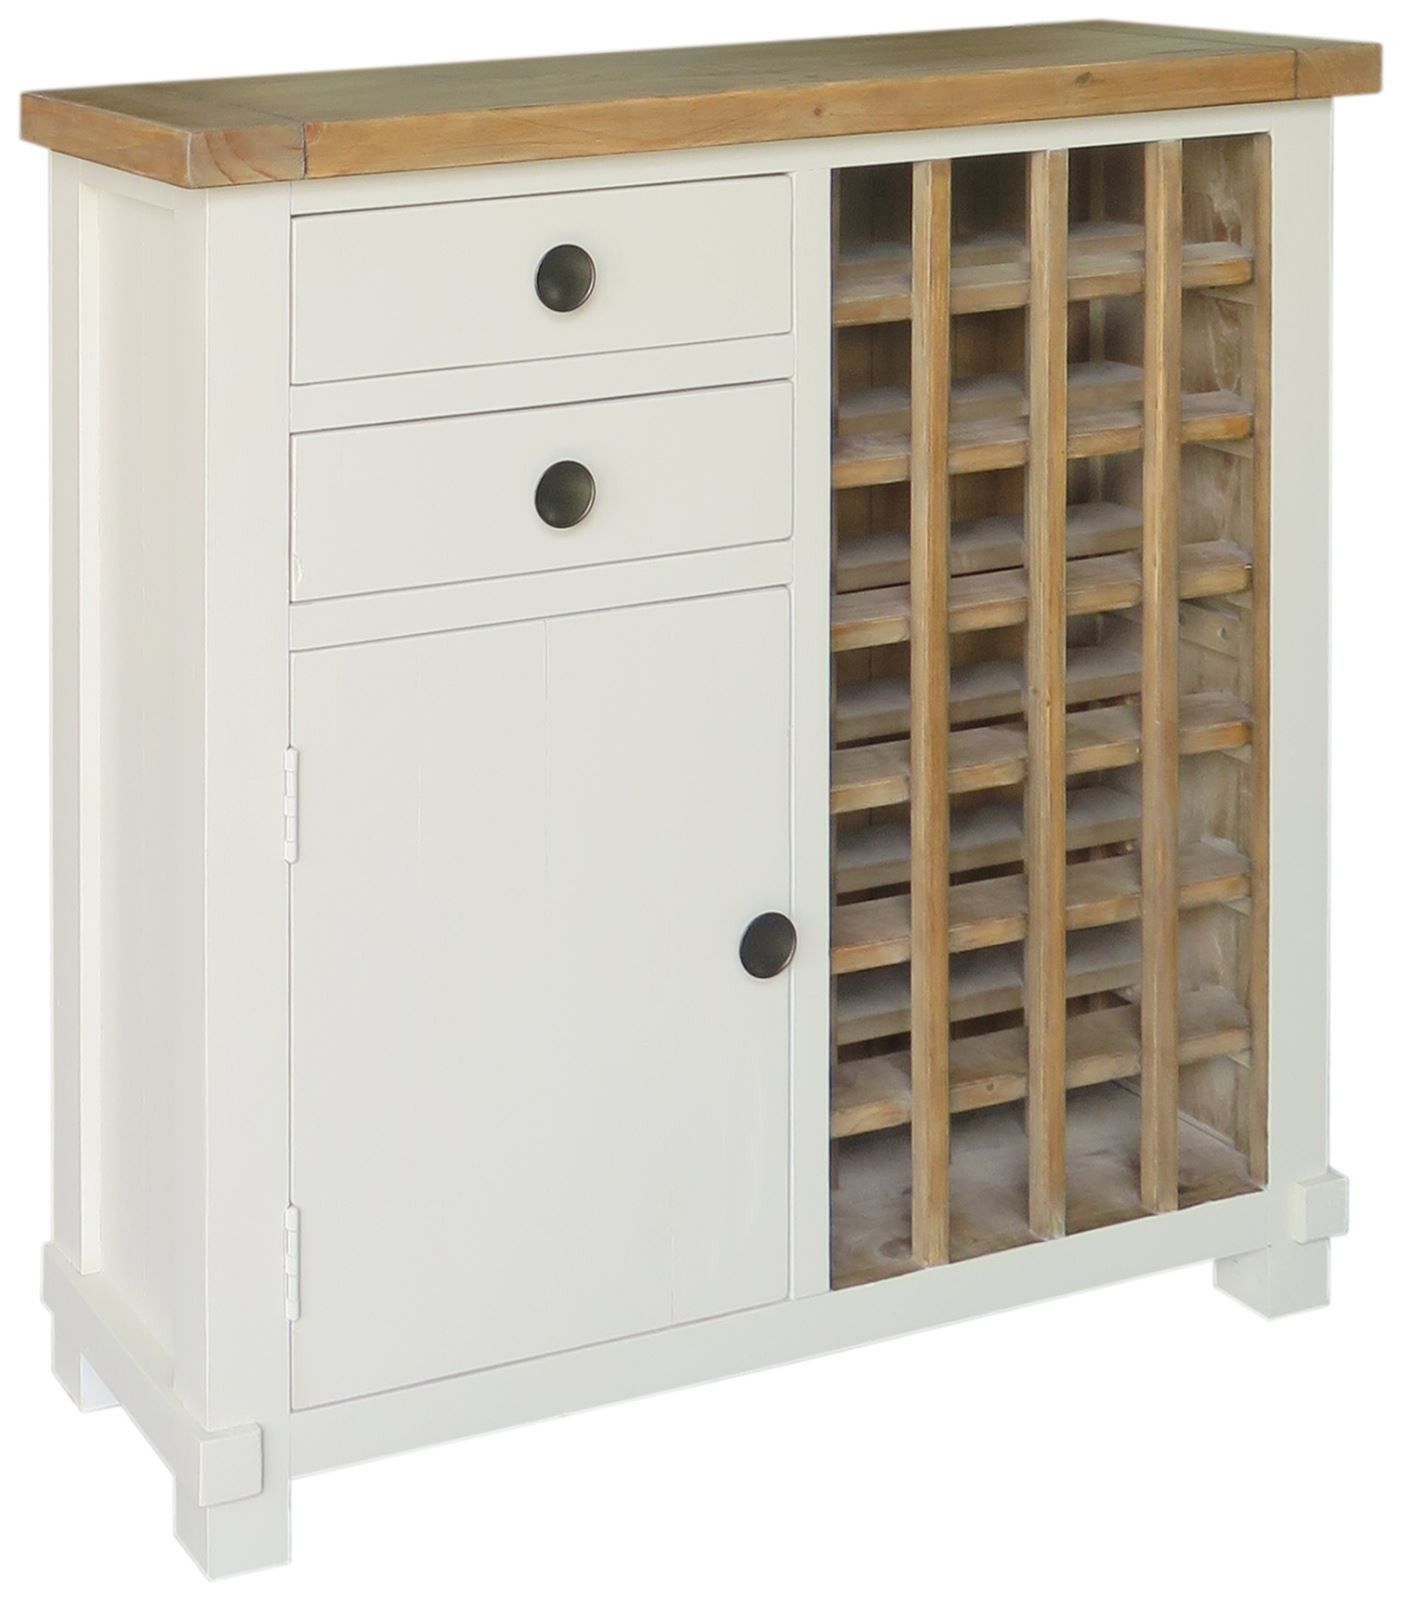 99+ Antique White Wine Cabinet - Remodeling Ideas for Kitchens Check ...